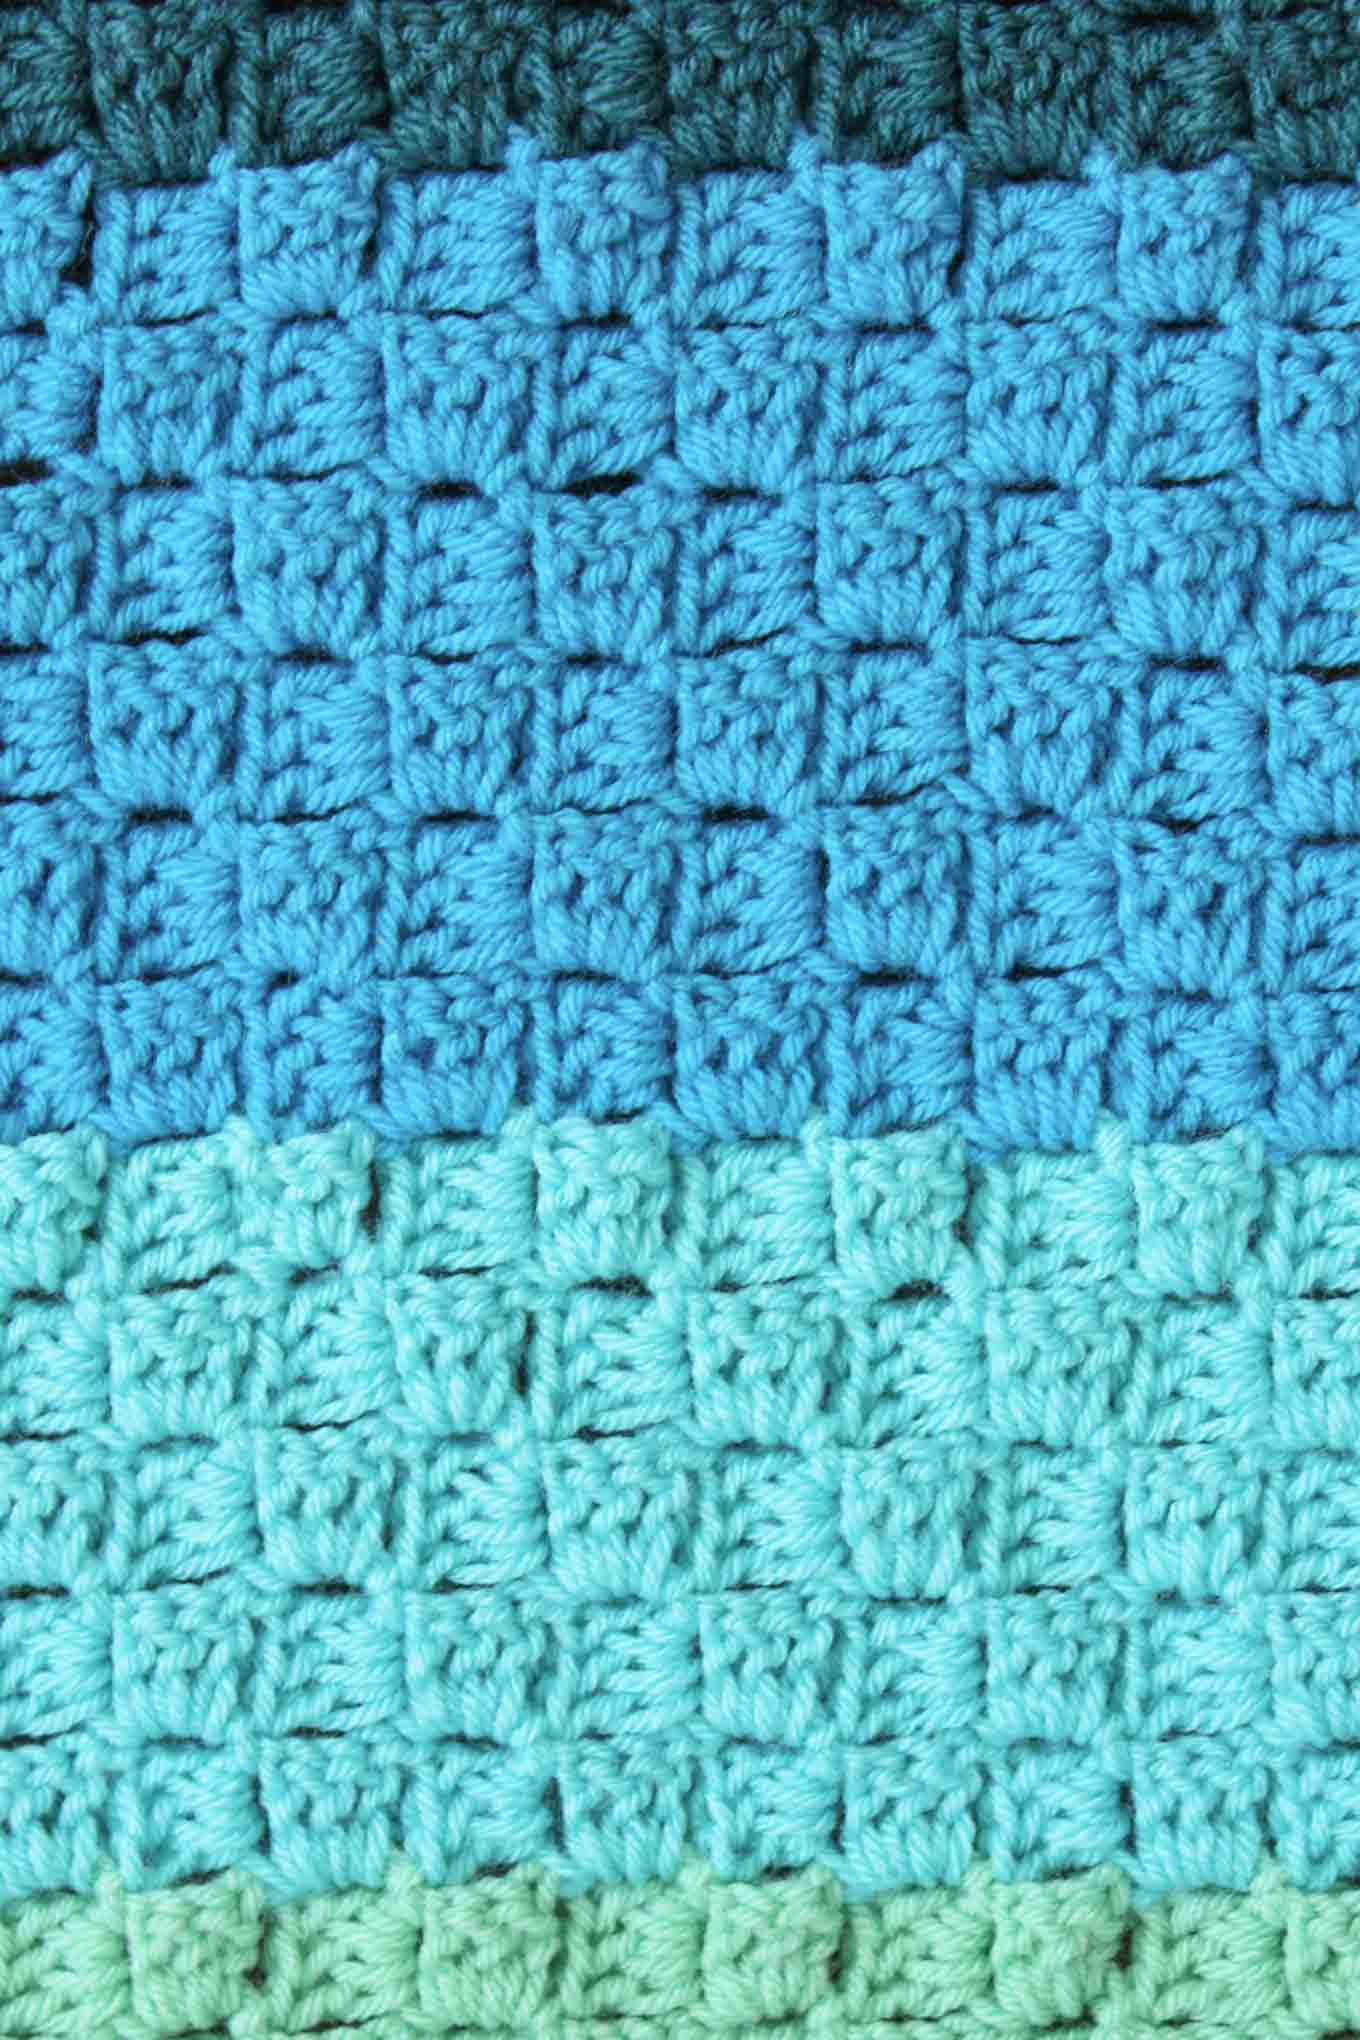 Ombre crochet! Free ombre corner to corner crochet pattern using Vanna's Choice yarn.